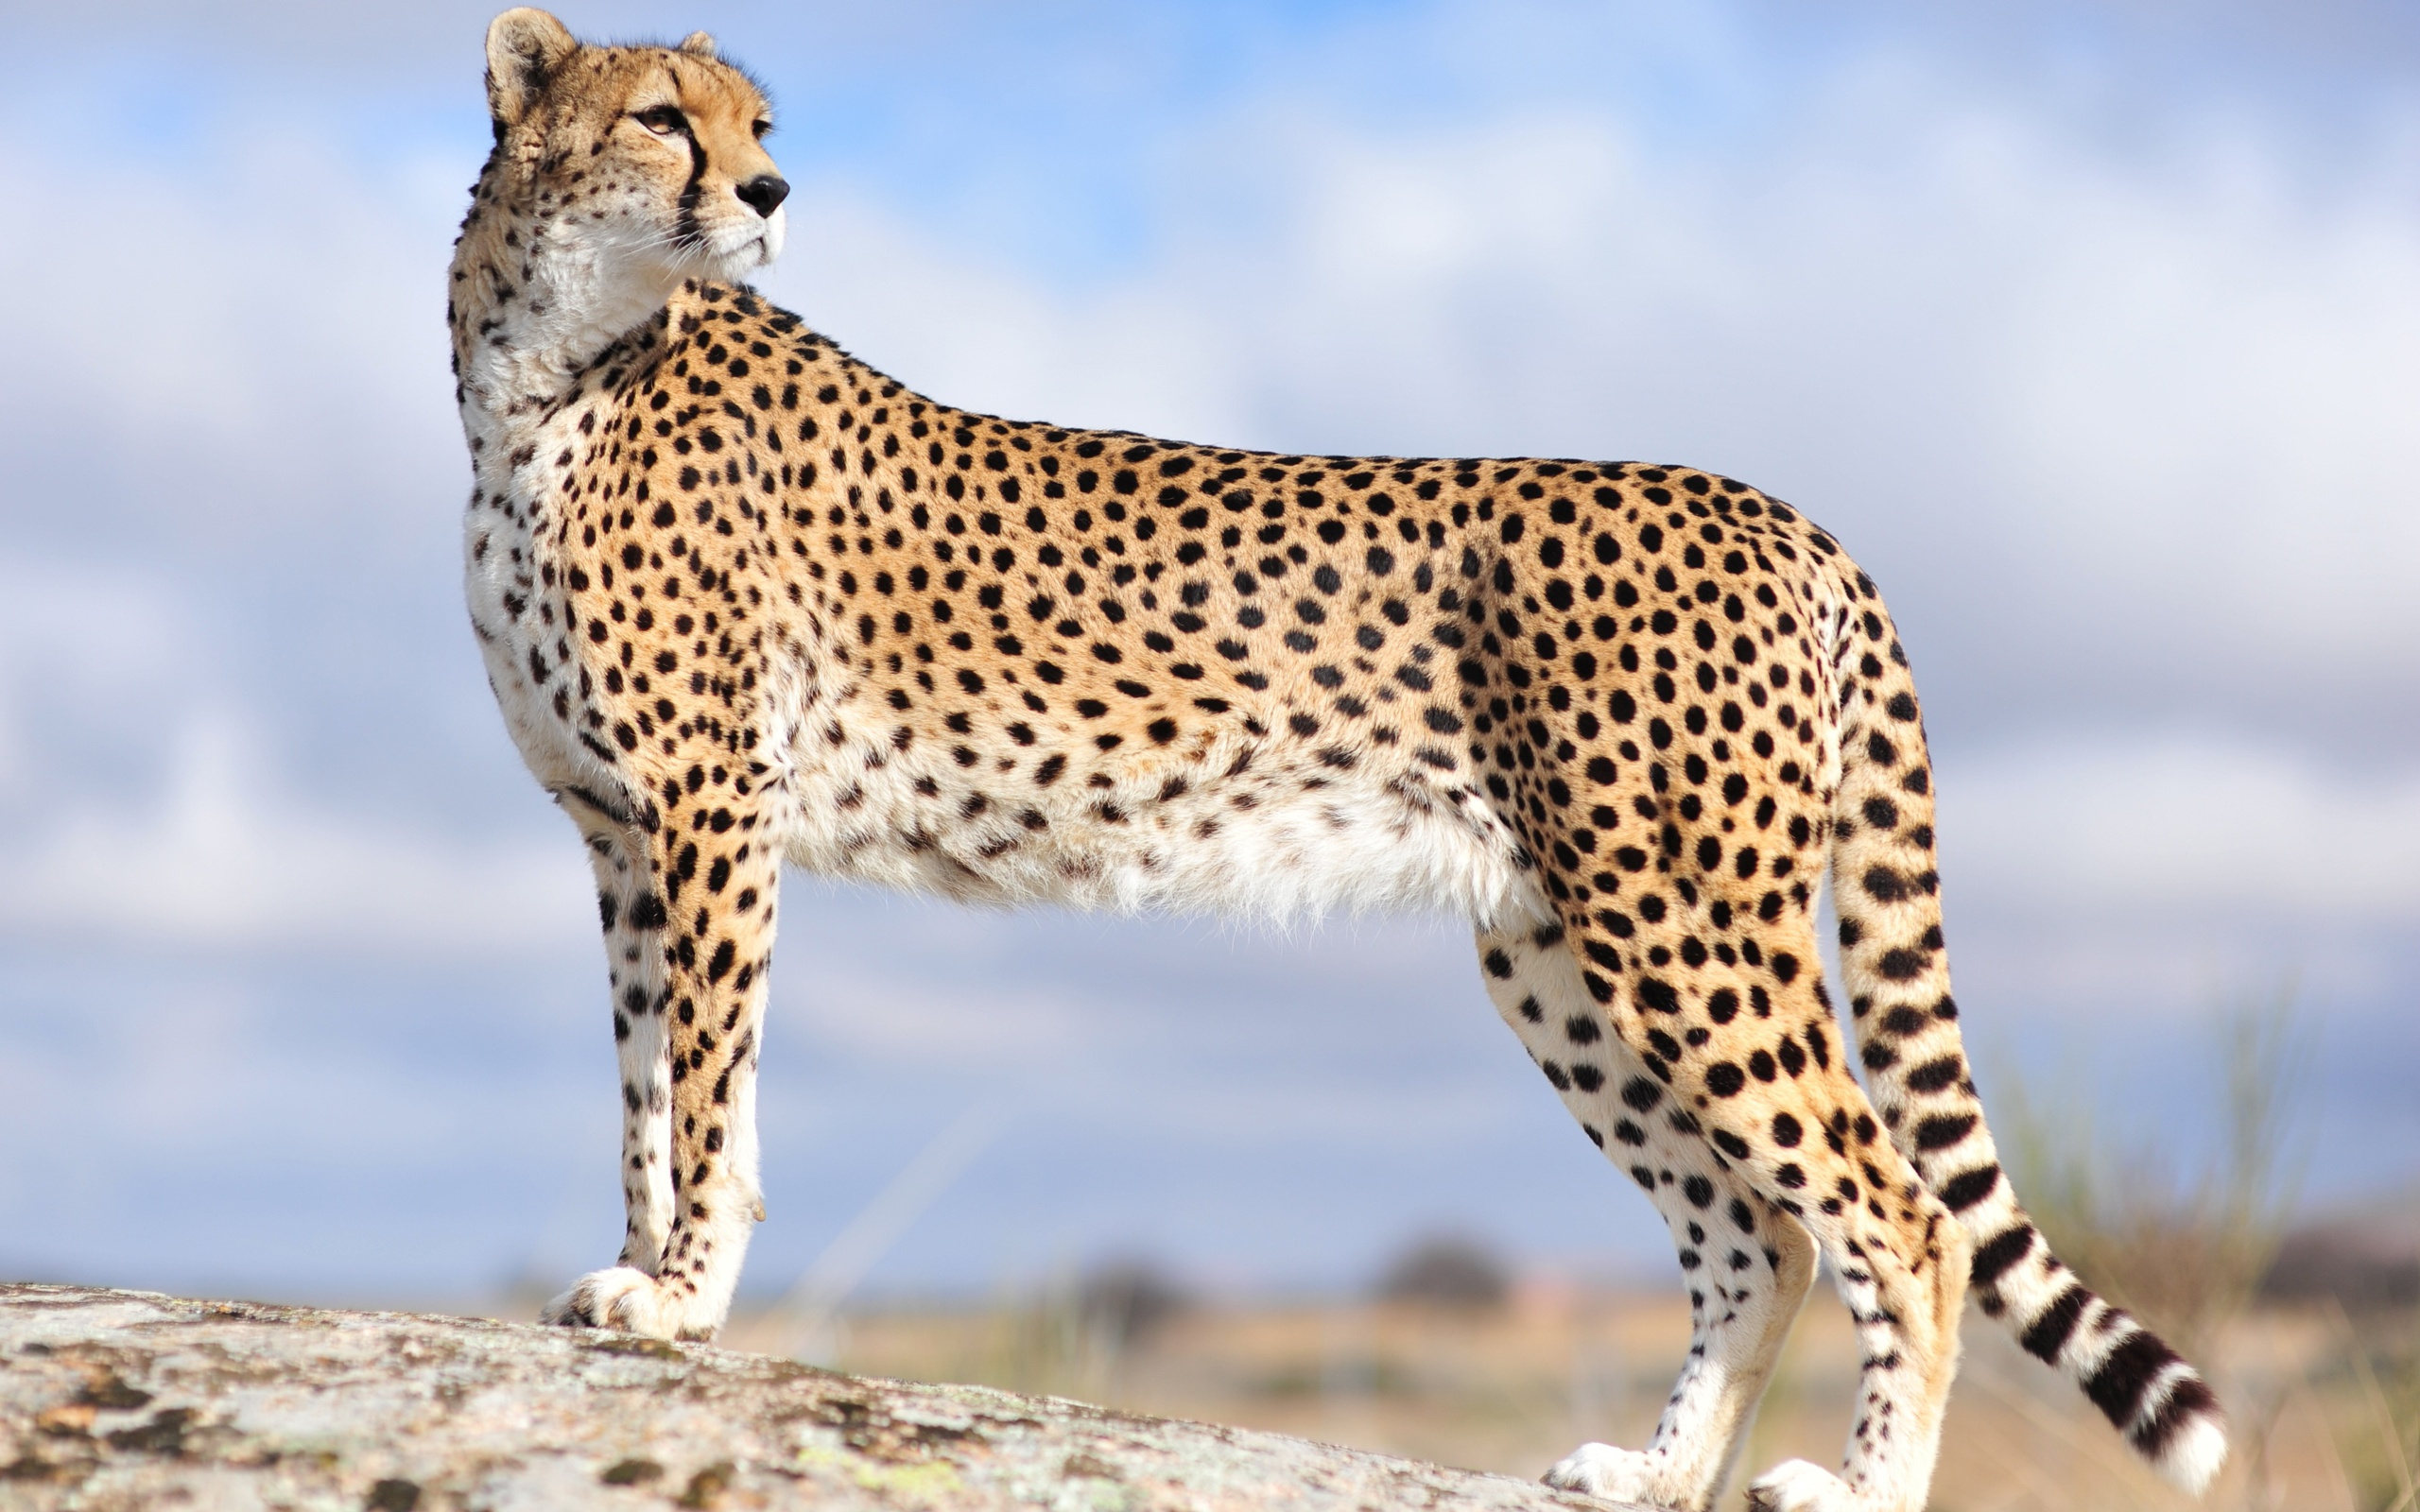 Cheetah Wallpapers Images - Wickedsa com